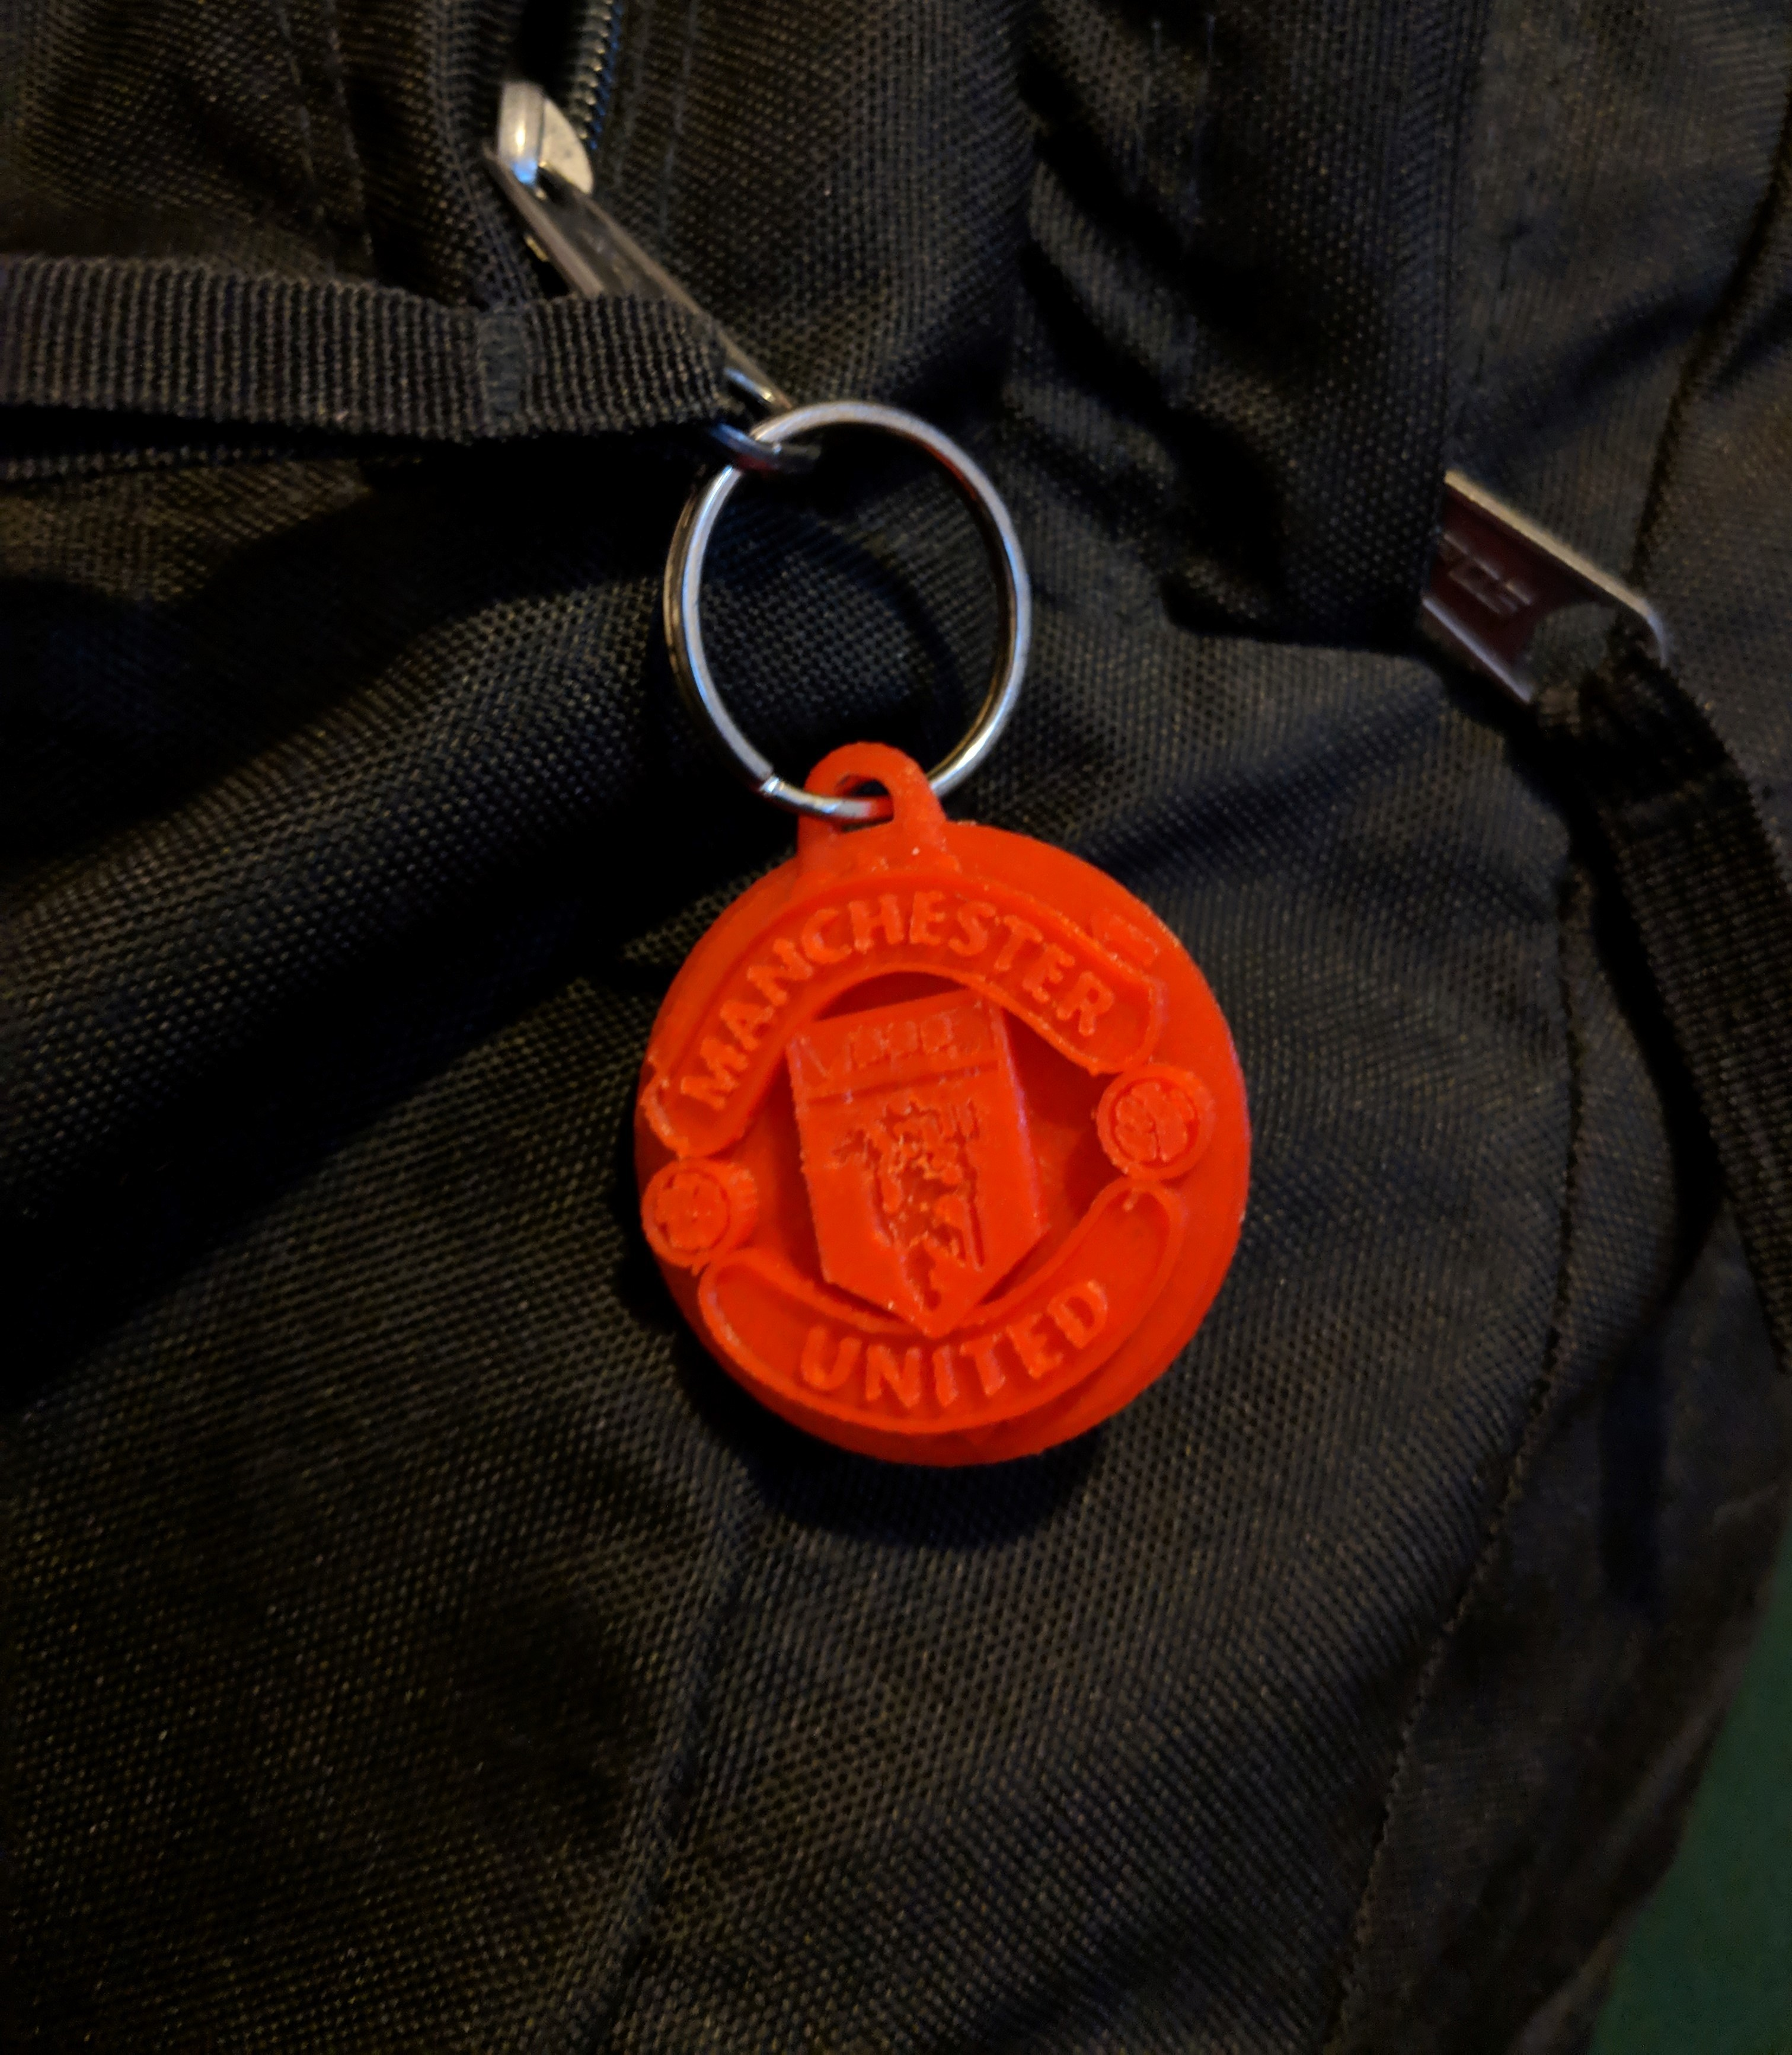 MUFC on backpack.jpg Download free STL file Manchester United FC Keychain • 3D printer object, dbish